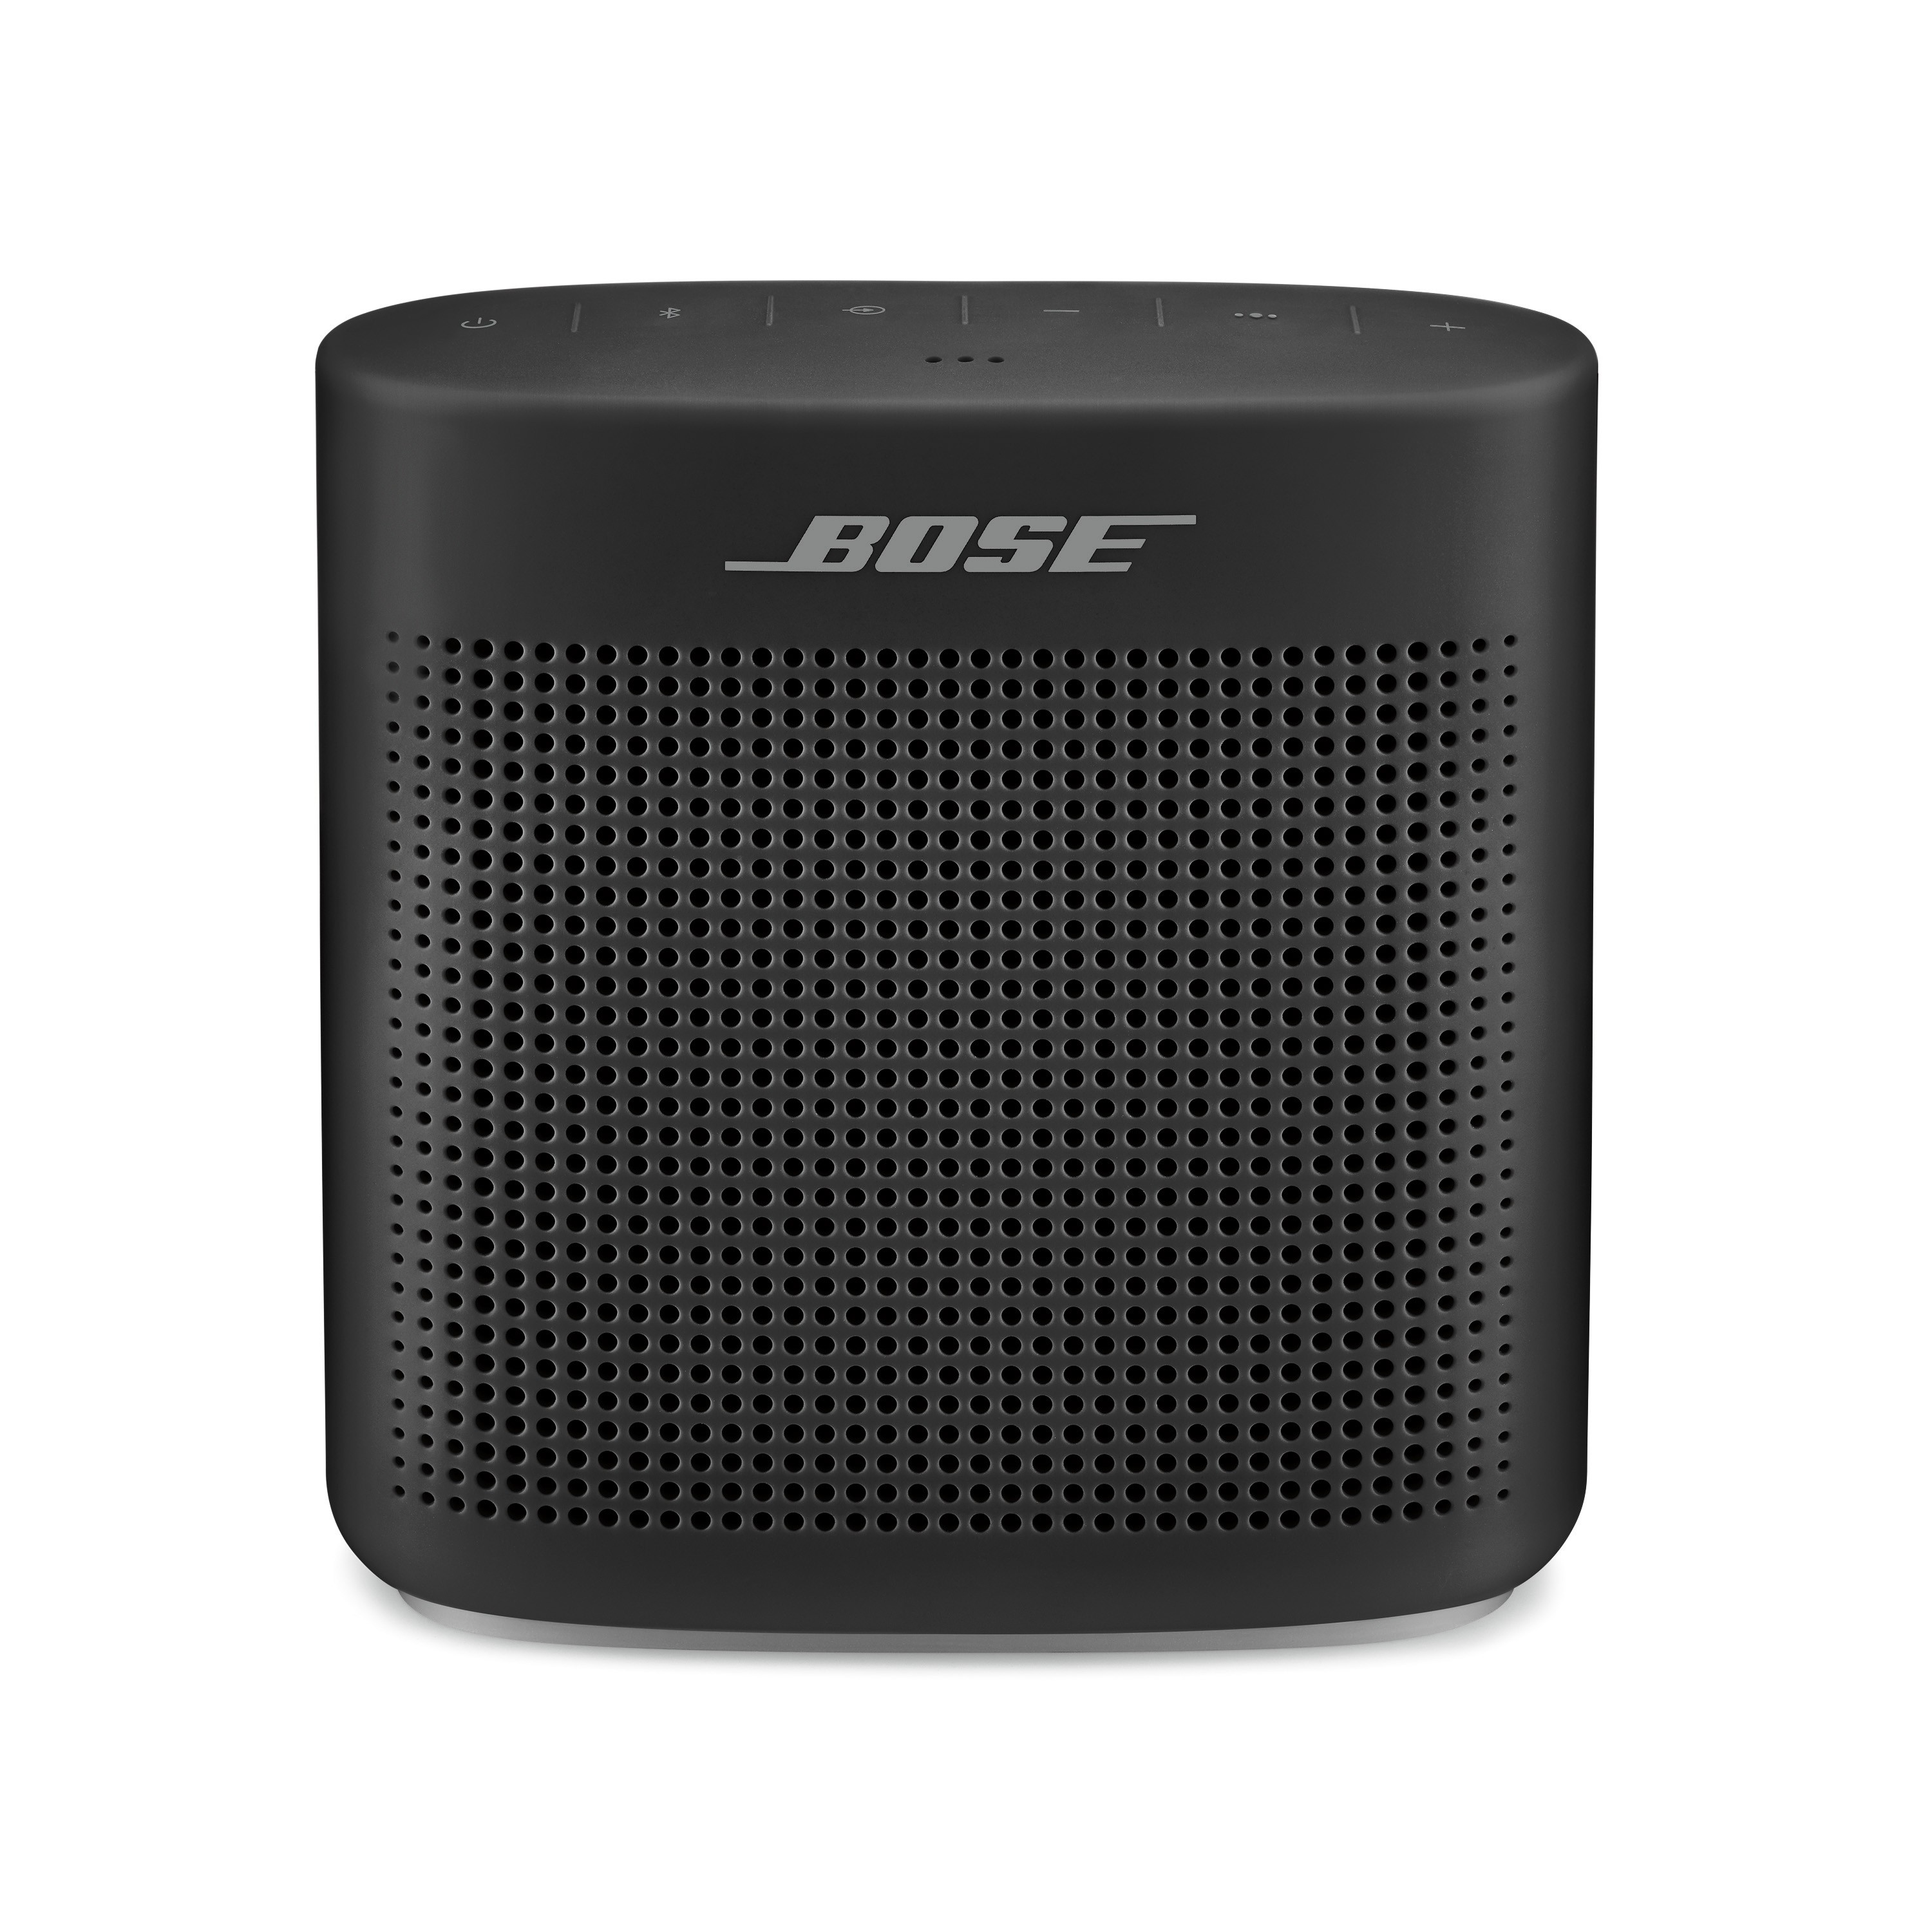 Camera Surveillance Bluetooth Bose Soundlink Color Ii : Test Complet - Enceintes